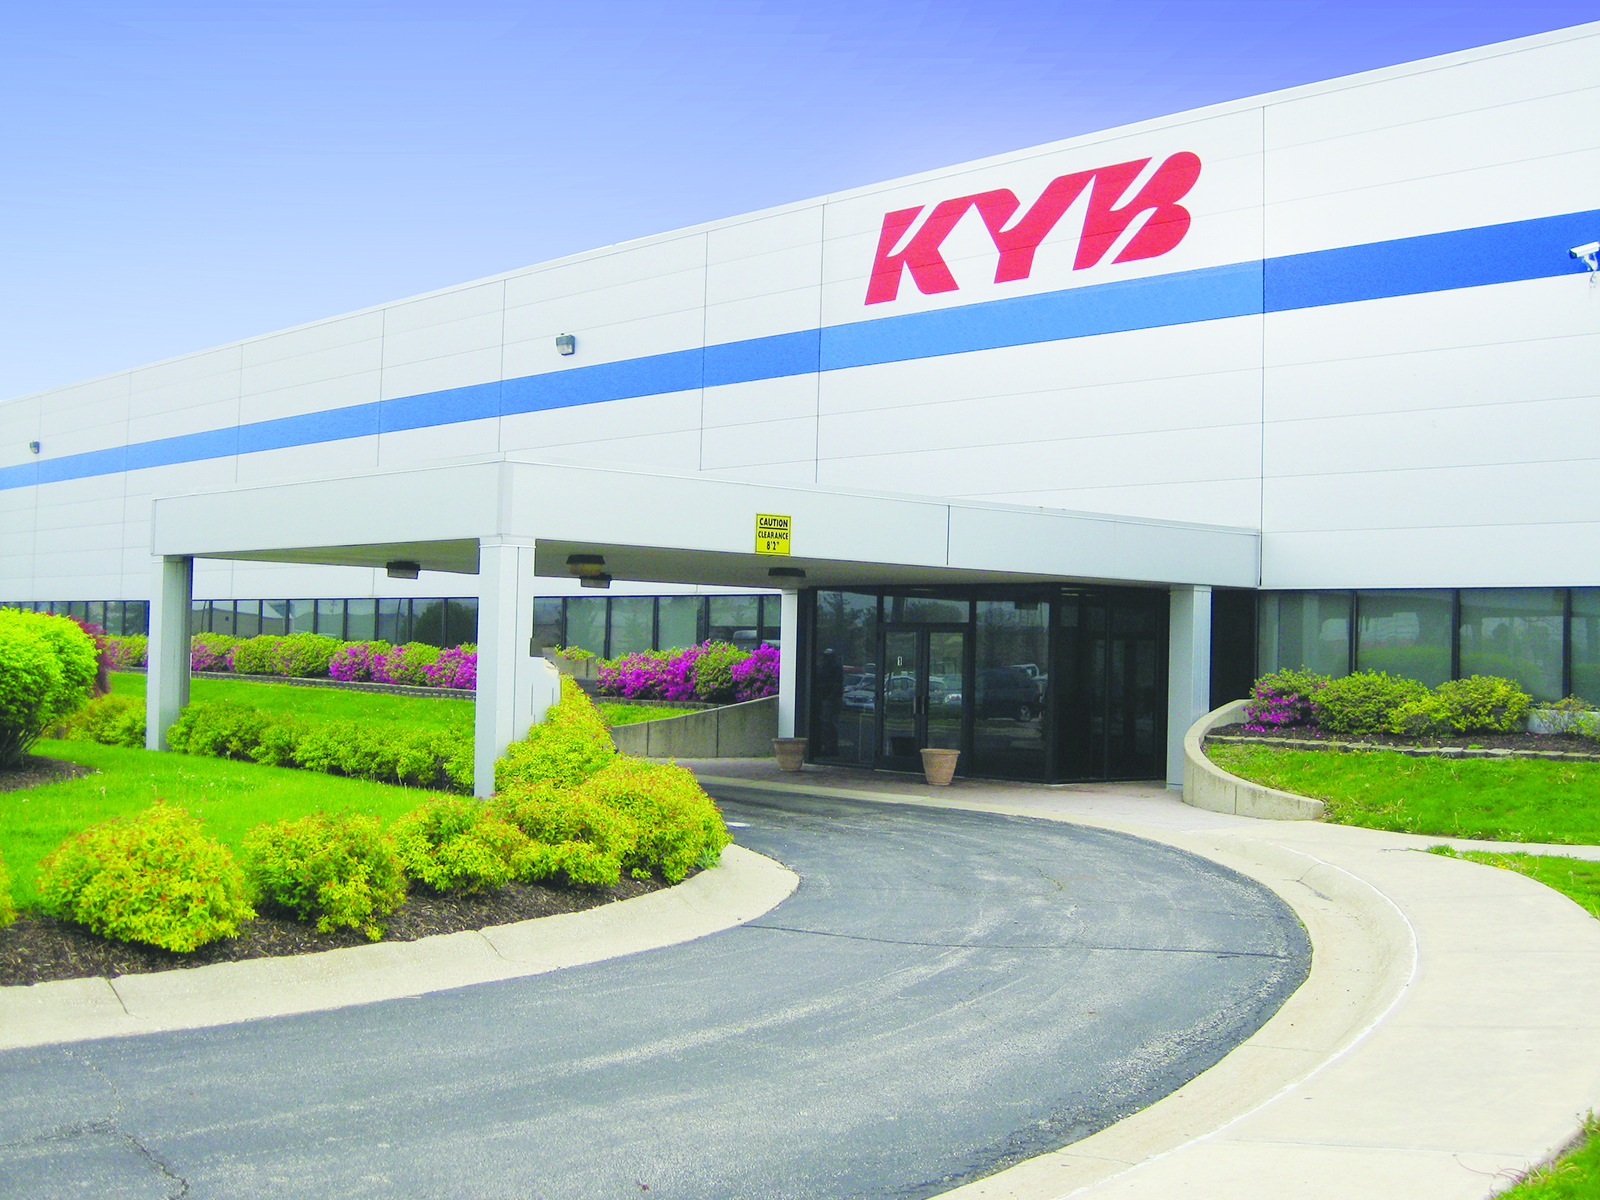 More shocks and struts: KYB Americas will expand Indiana facility